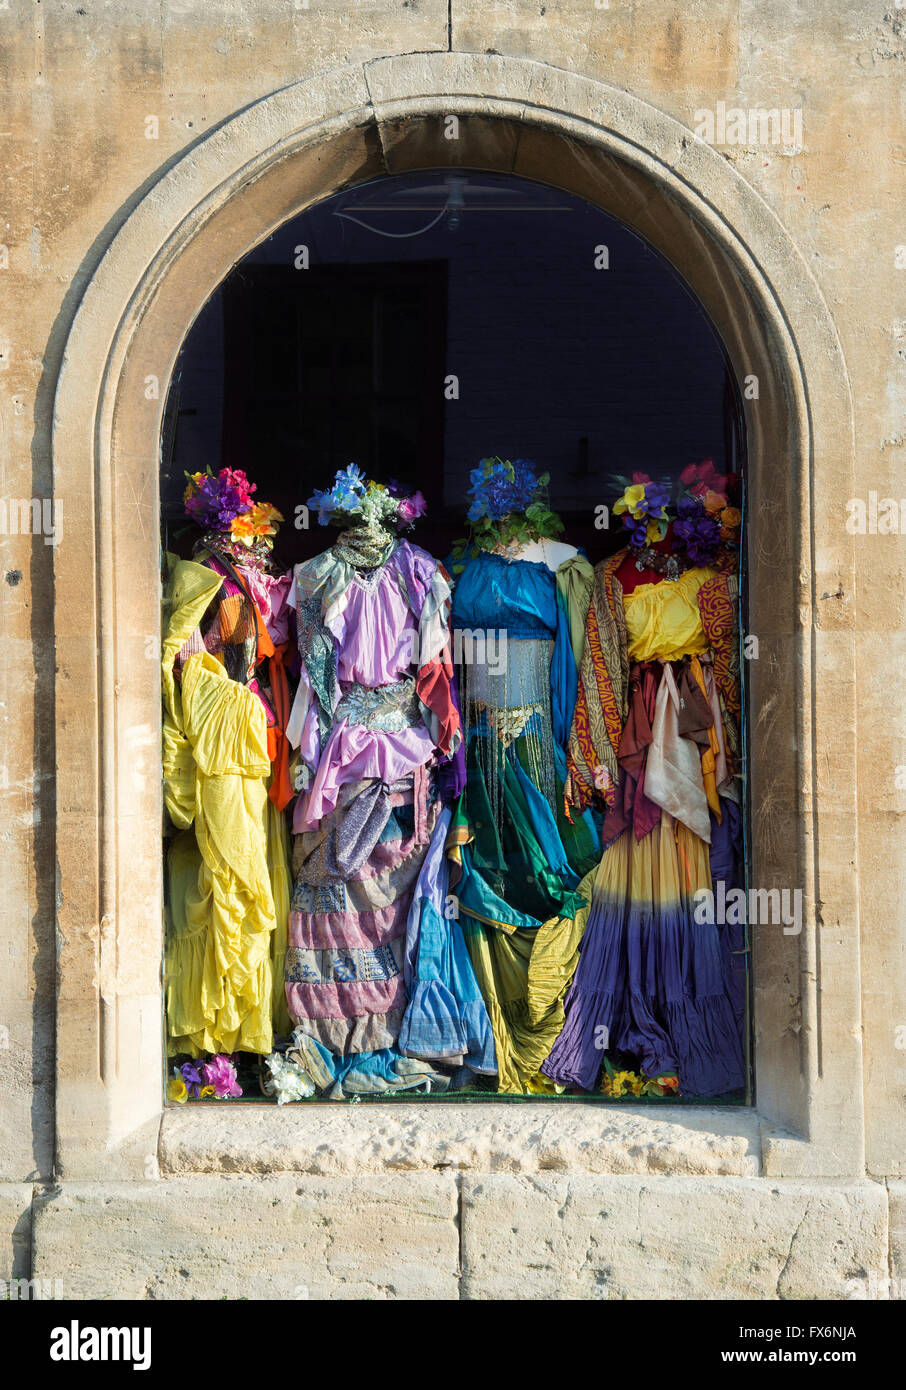 Colourful womens clothes in a shop window. Glastonbury, Somerset, England - Stock Image